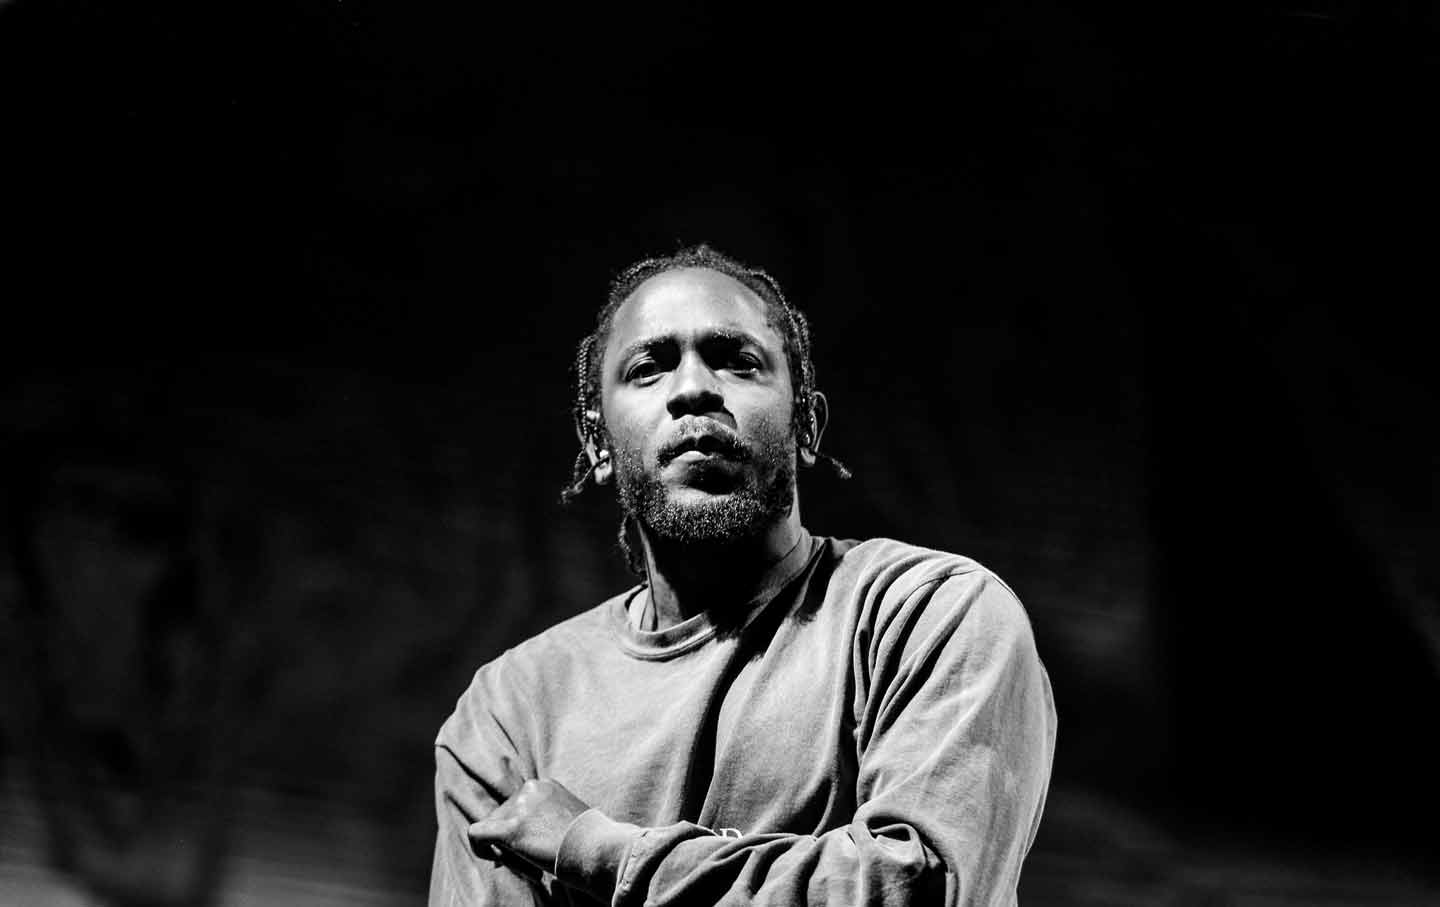 kendrick-lamar-working-on-new-music